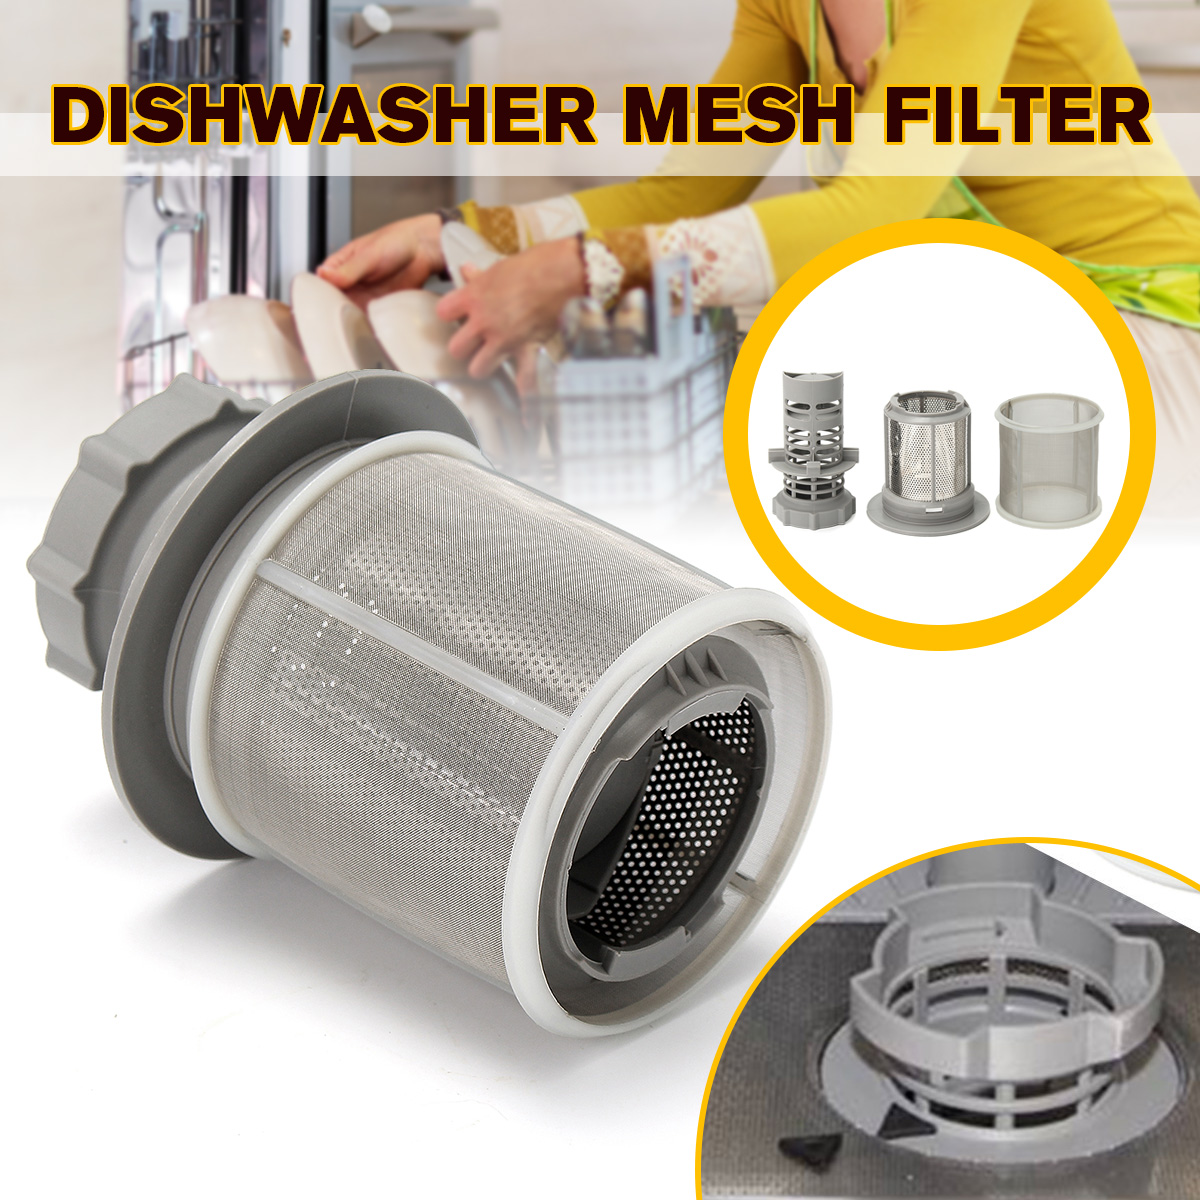 2 Part Dishwasher Mesh Filter Set Grey PP + Stainless Steel For Bosch Dishwasher 427903 170740 Series Replacement For Dishwasher